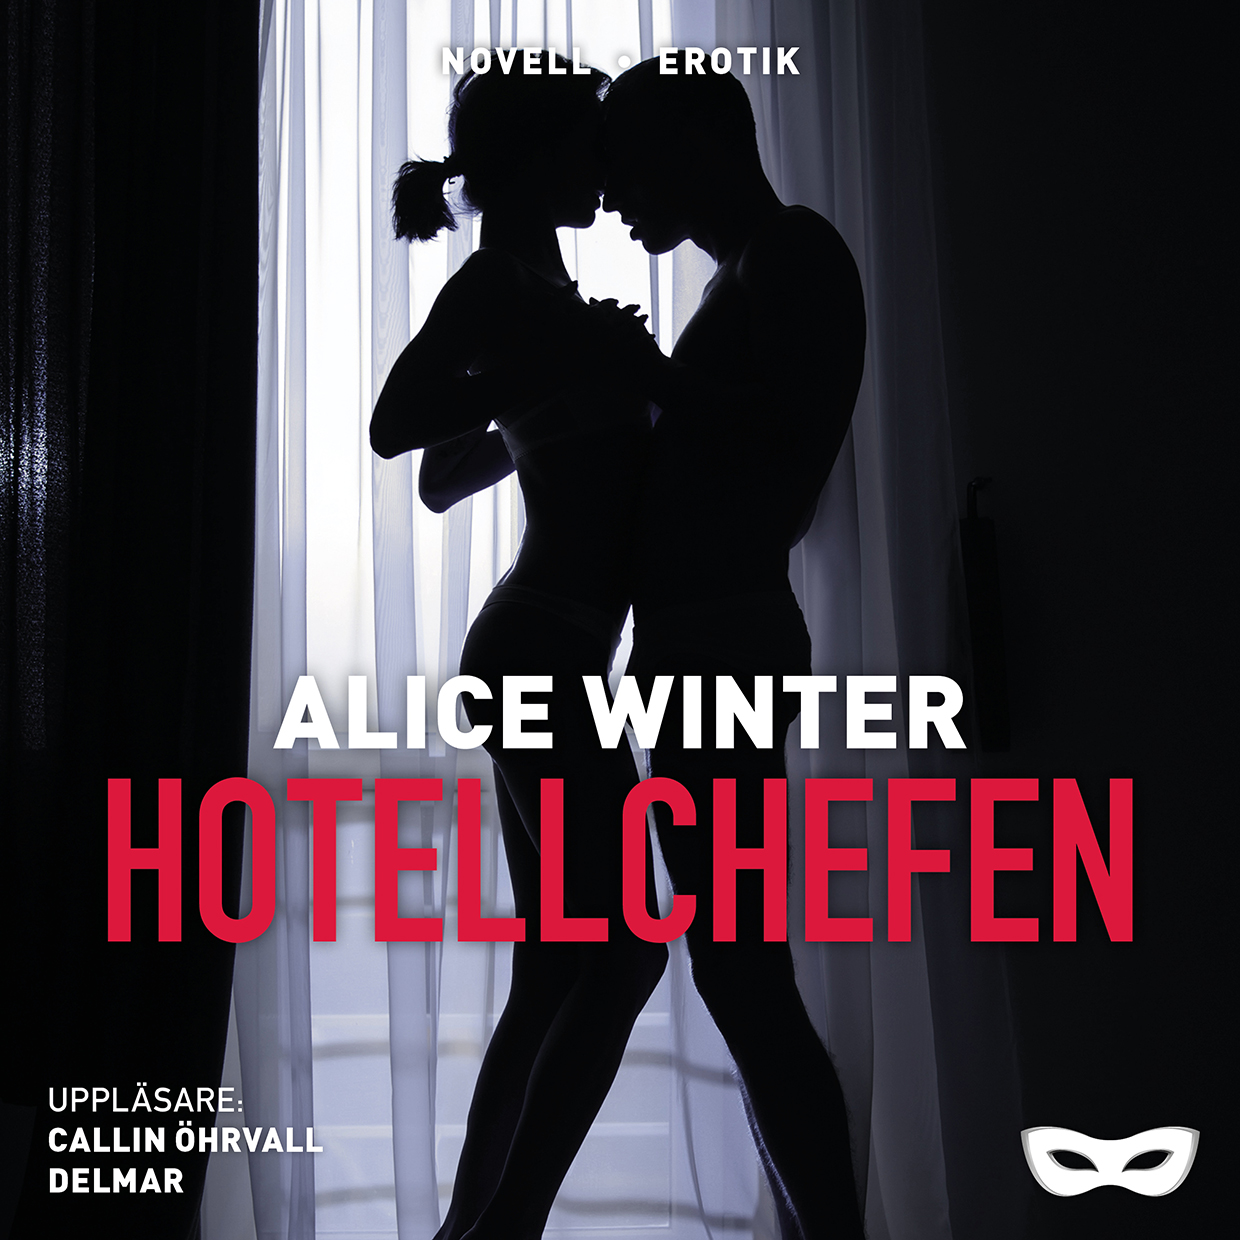 ROSALYNE4_Hotellchefen_Alice Winter_audio.jpg